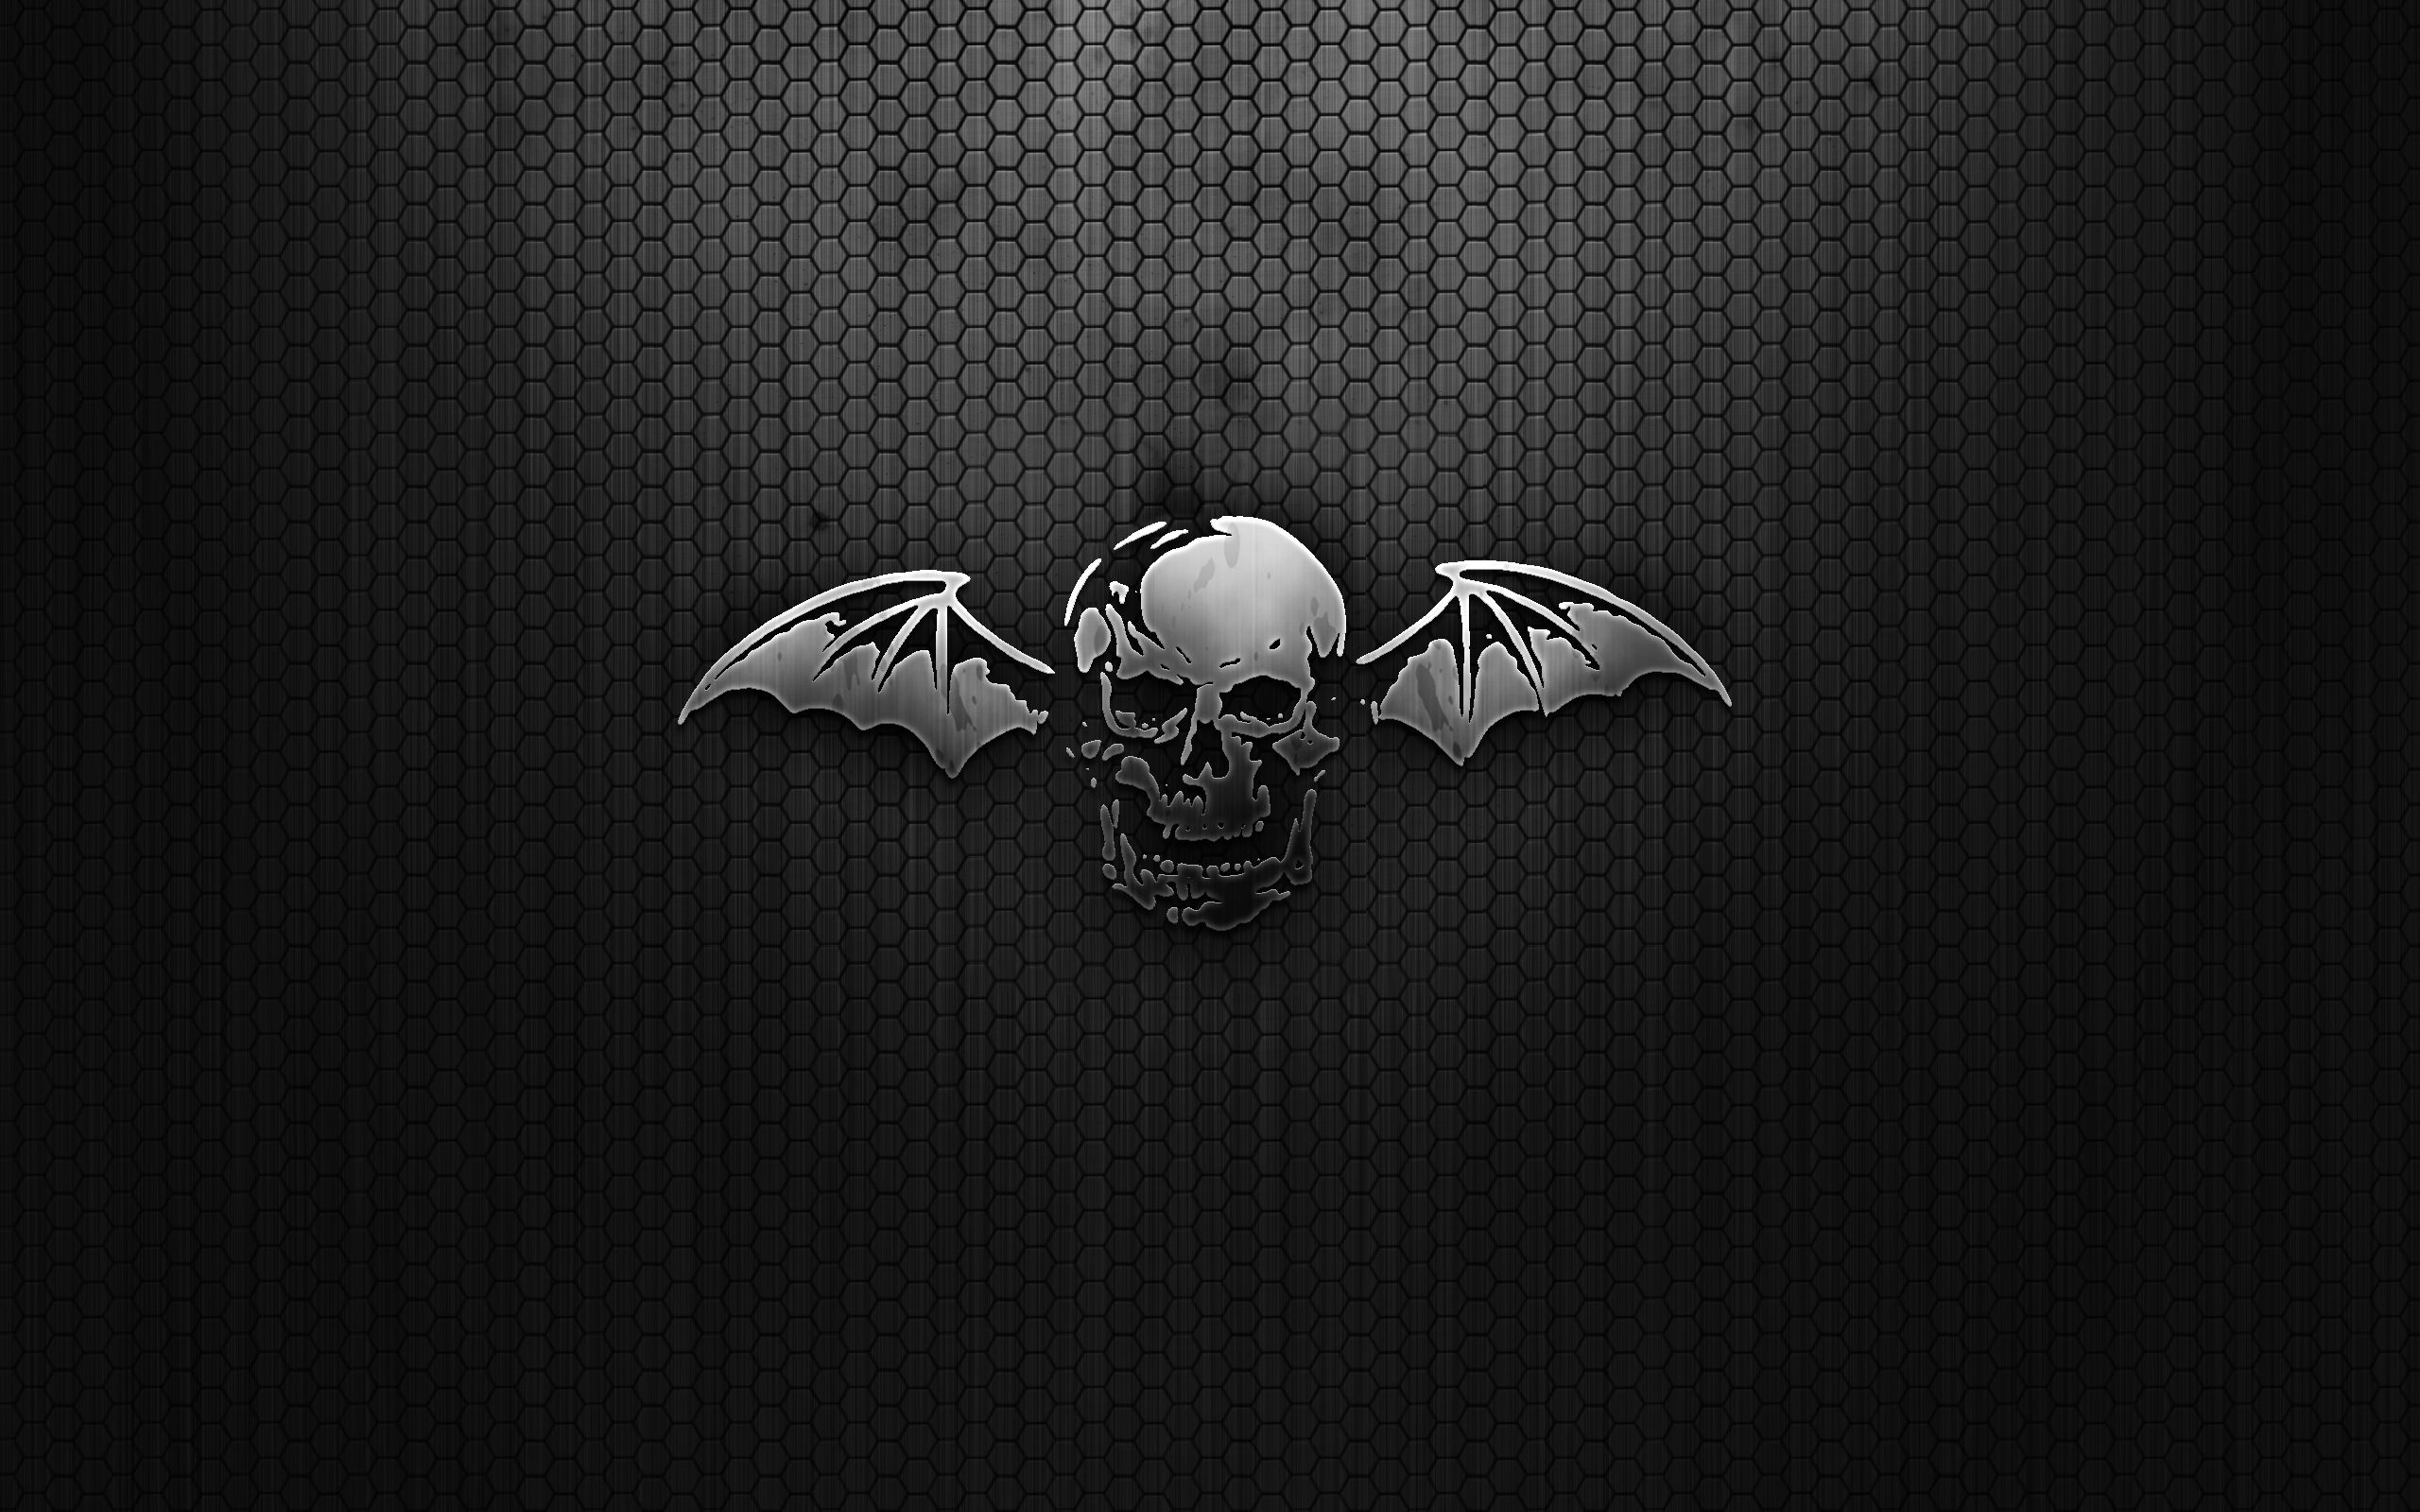 Avenged sevenfold wallpaper hd 5fdphail to the kingeddie avenged sevenfold wallpaper hd voltagebd Image collections